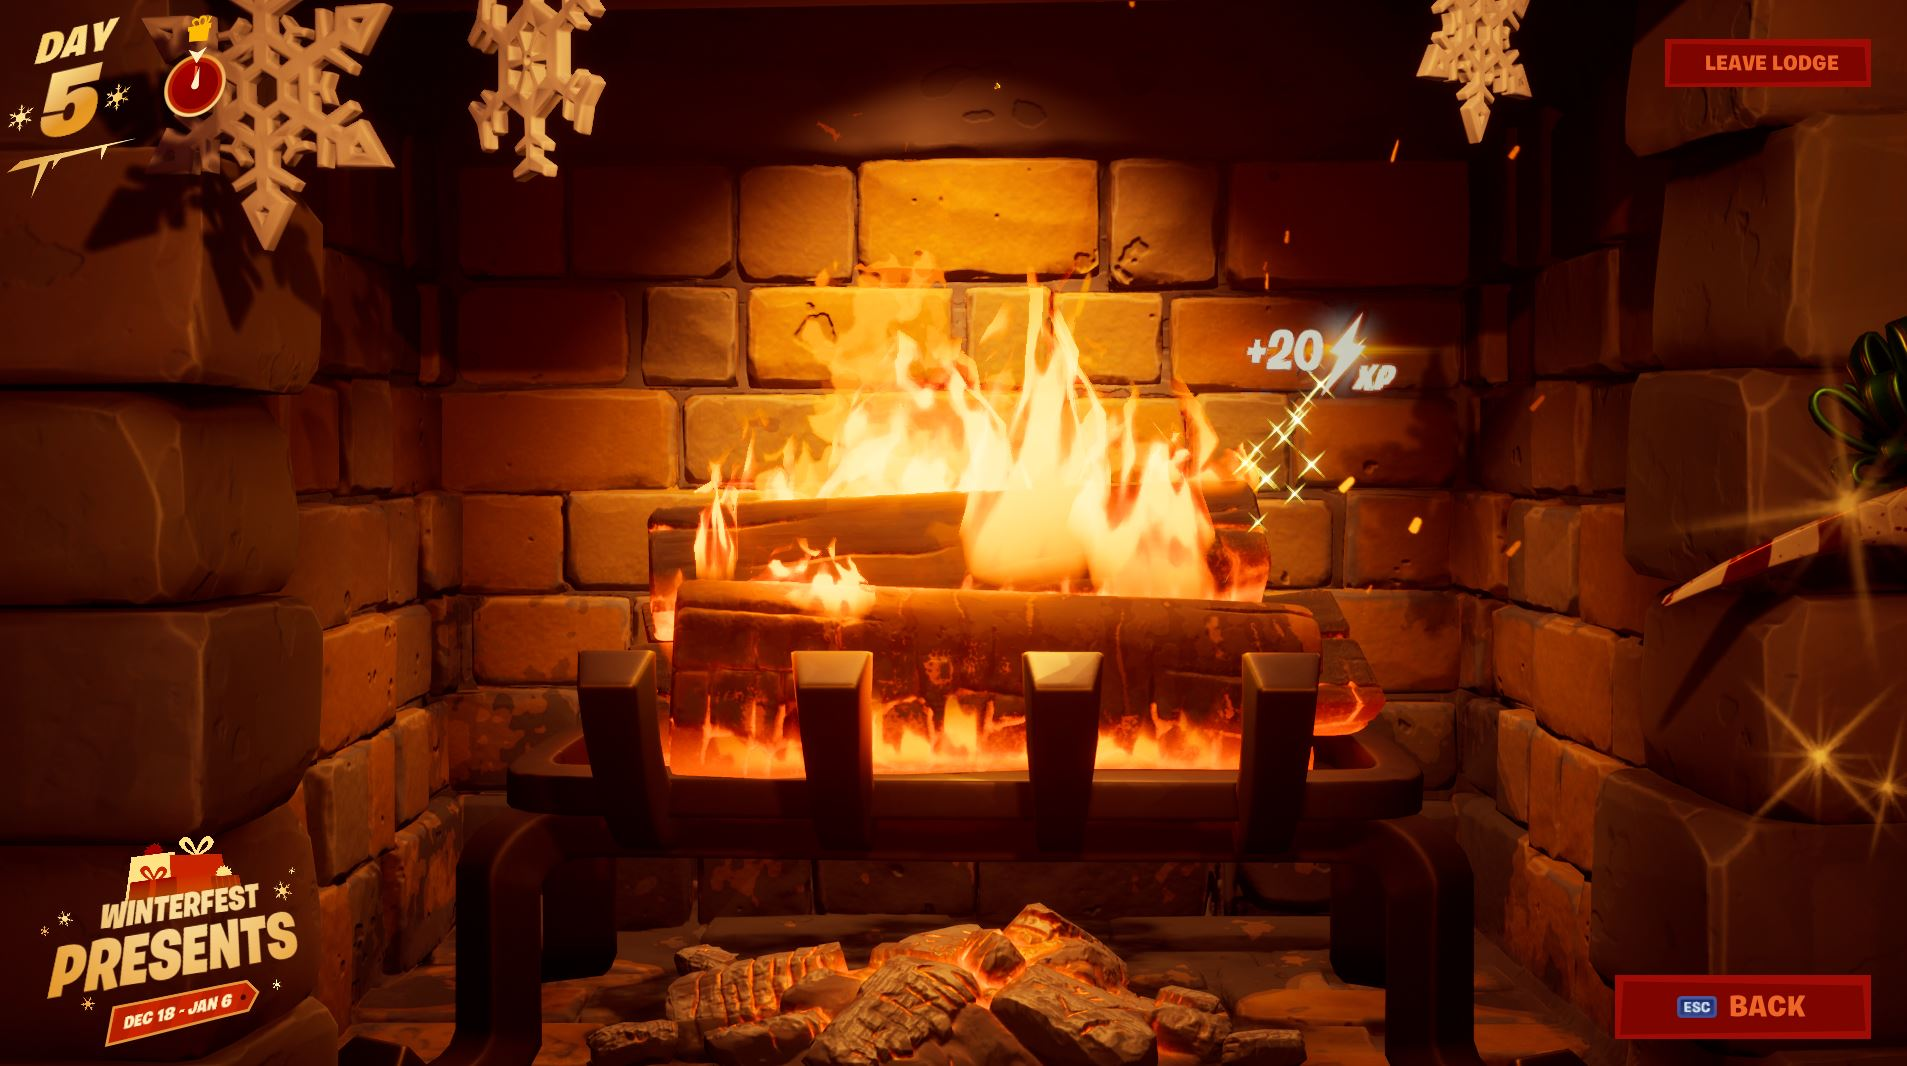 Warm yourself by the fireplace